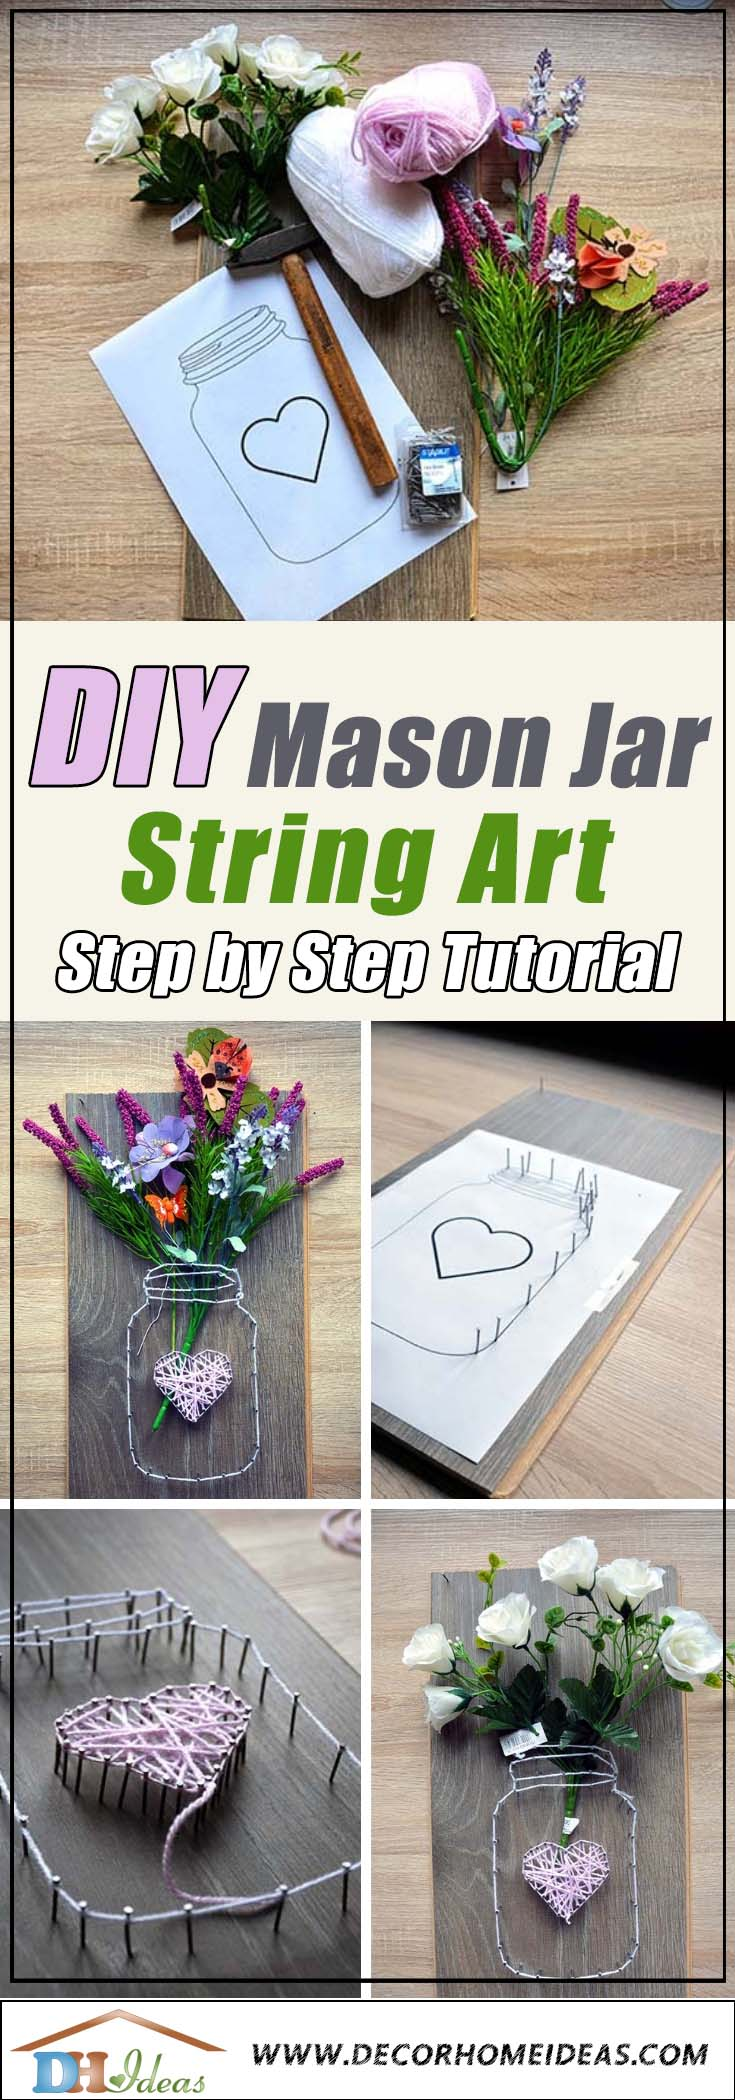 DIY Mason Jar String Art Tutorial with Step by step instructions and free printable mason jar string art template #stringart #masonjar #diy #decorhomeideas